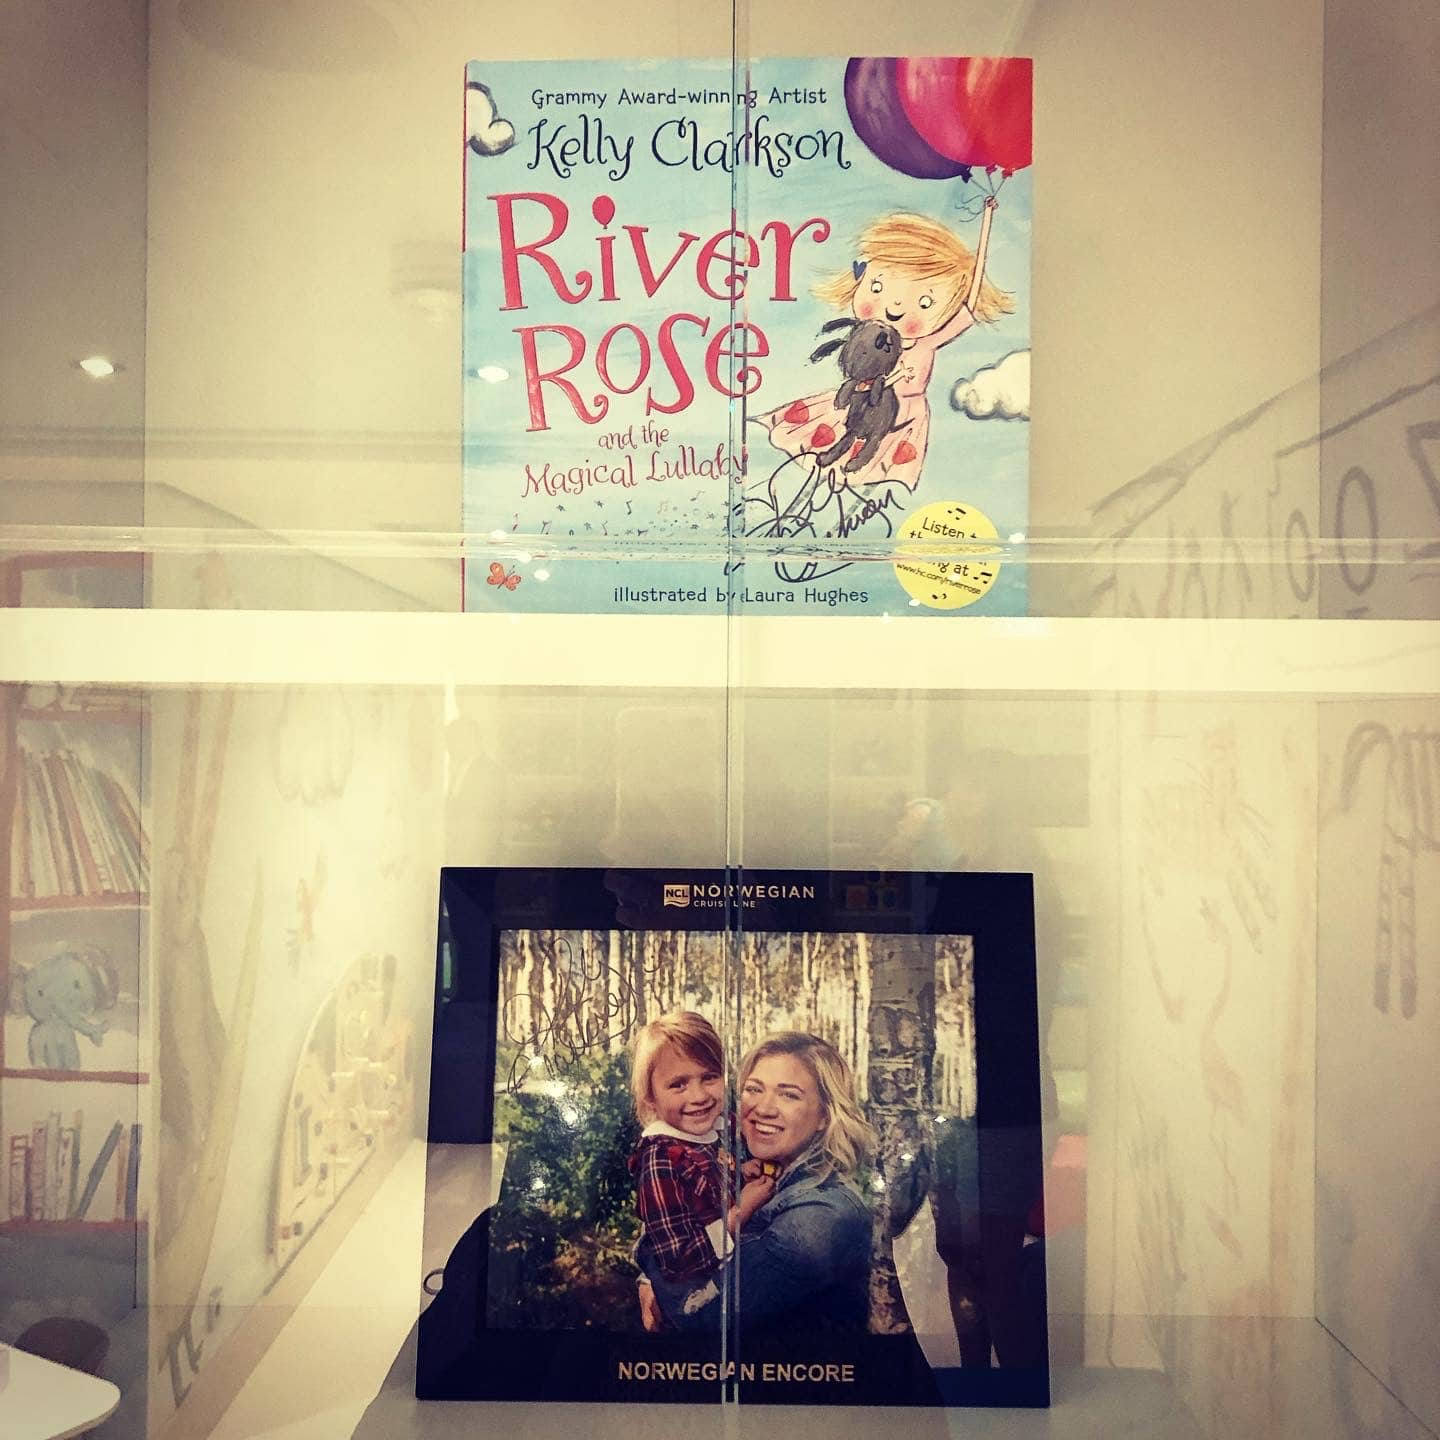 The River Rose Reading room is a cosy room where you can read with your child on the Norwegian Encore inspired by the godmother Kelly Clarkson